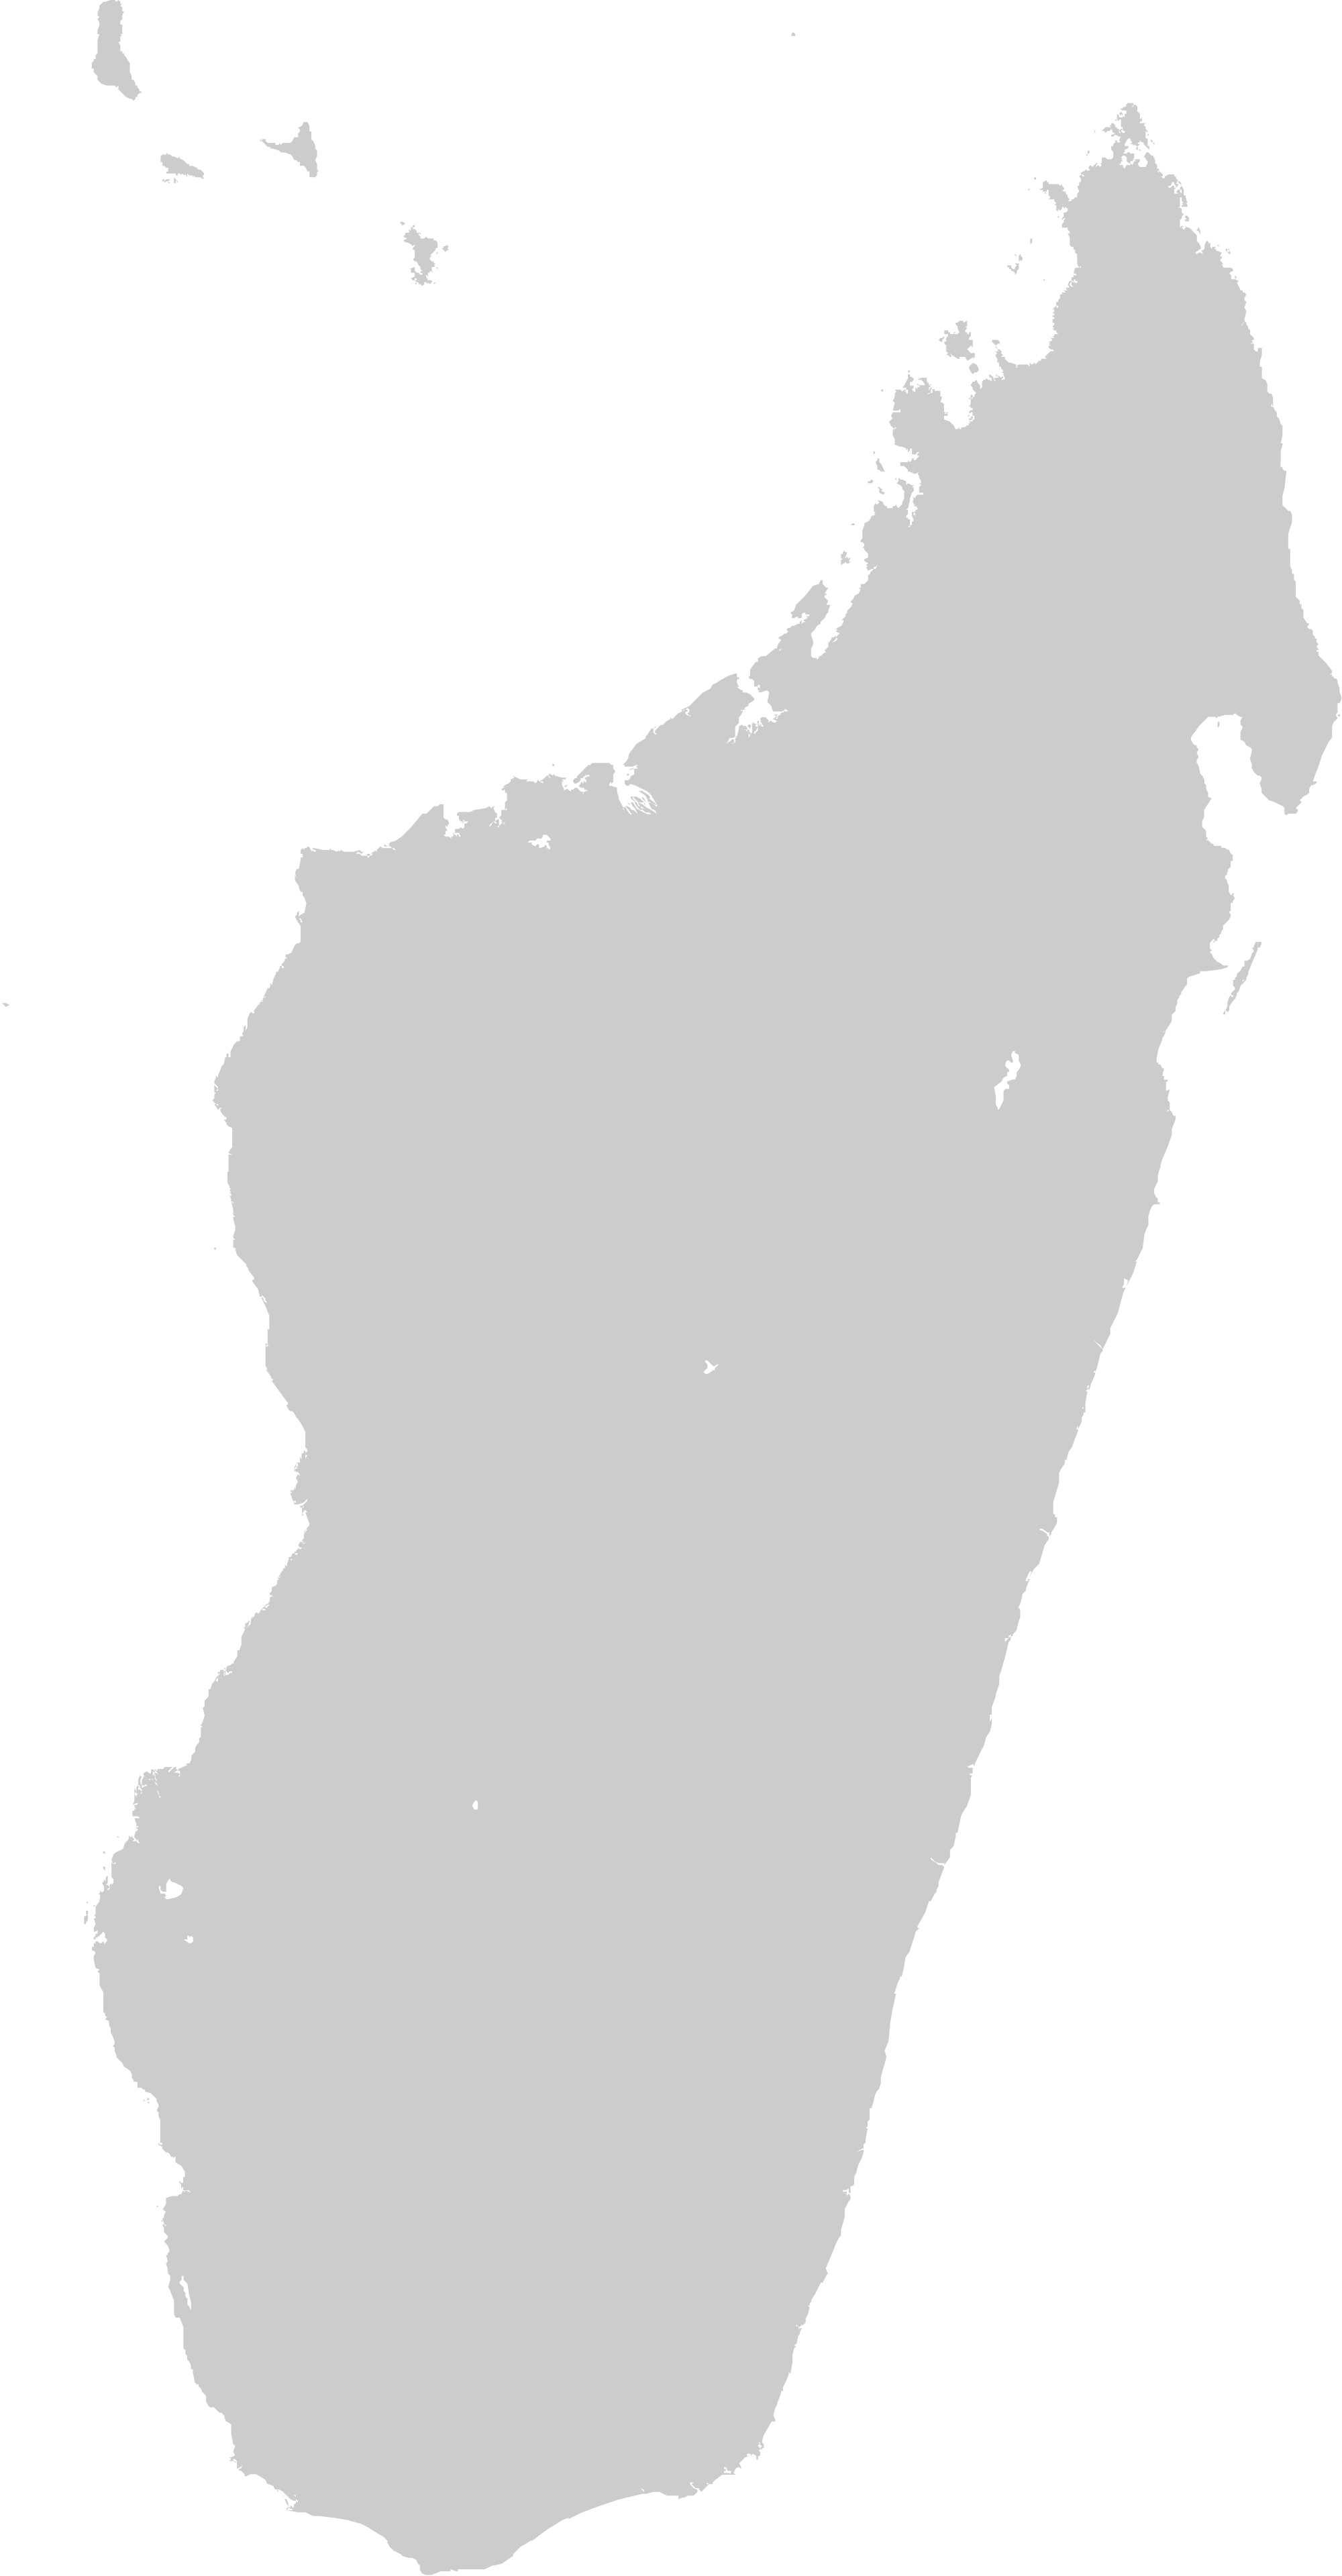 Madagascar country png. Atlas of wikimedia commons